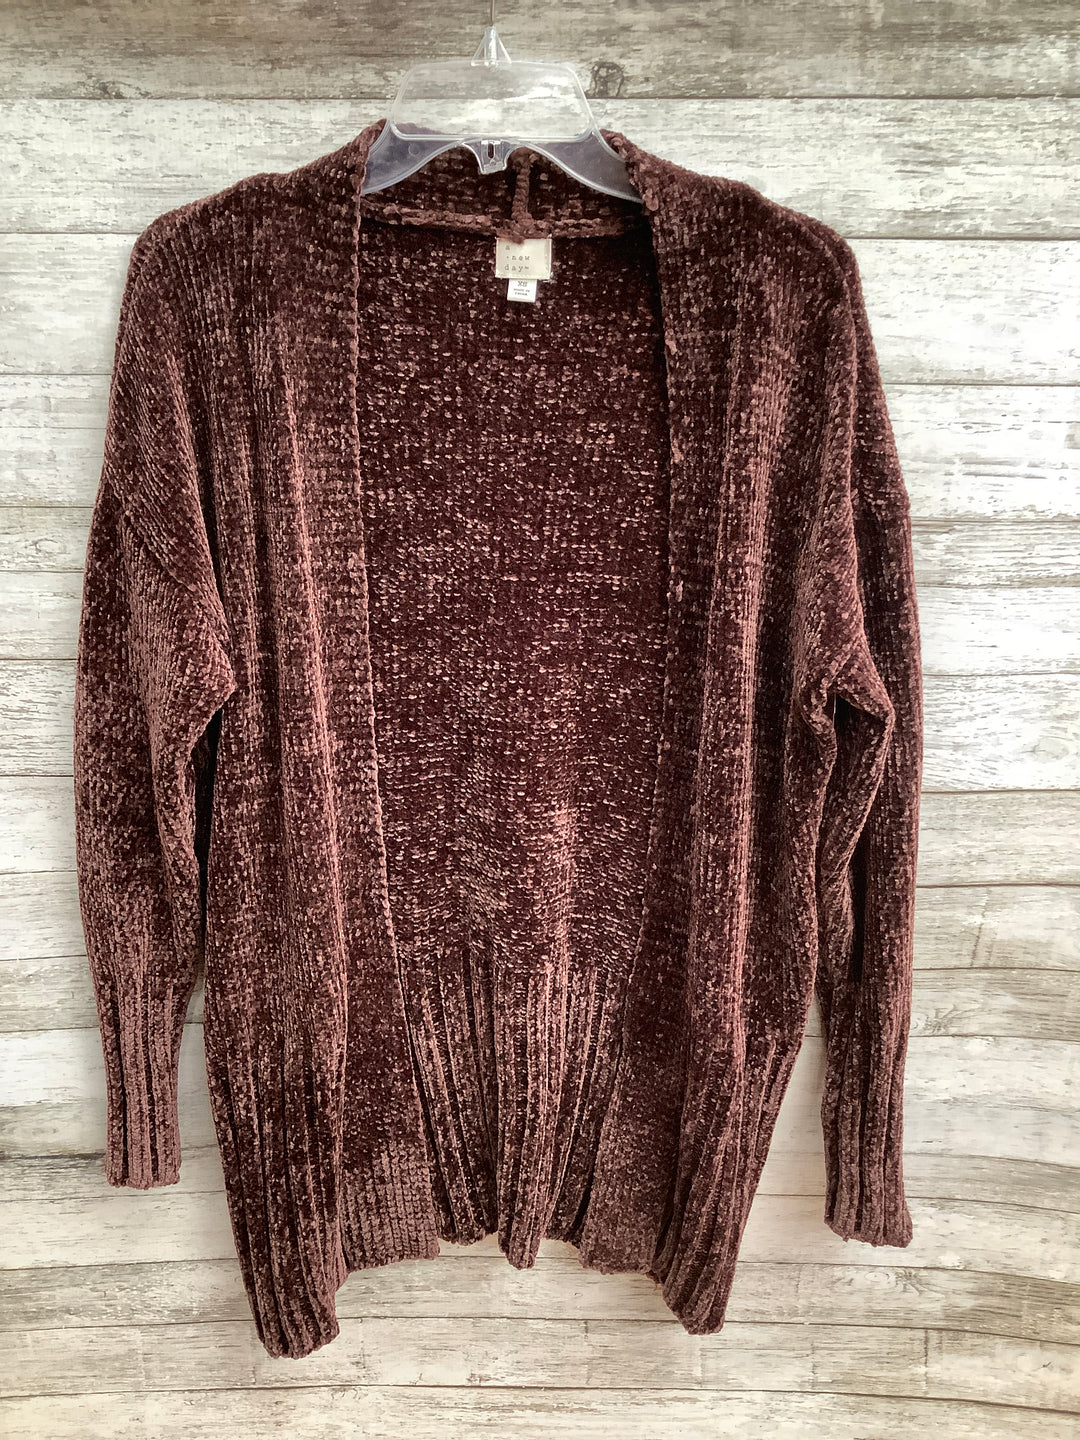 Primary Photo - brand: a new day , style: sweater cardigan heavyweight , color: brown , size: xs , sku: 105-4940-7715